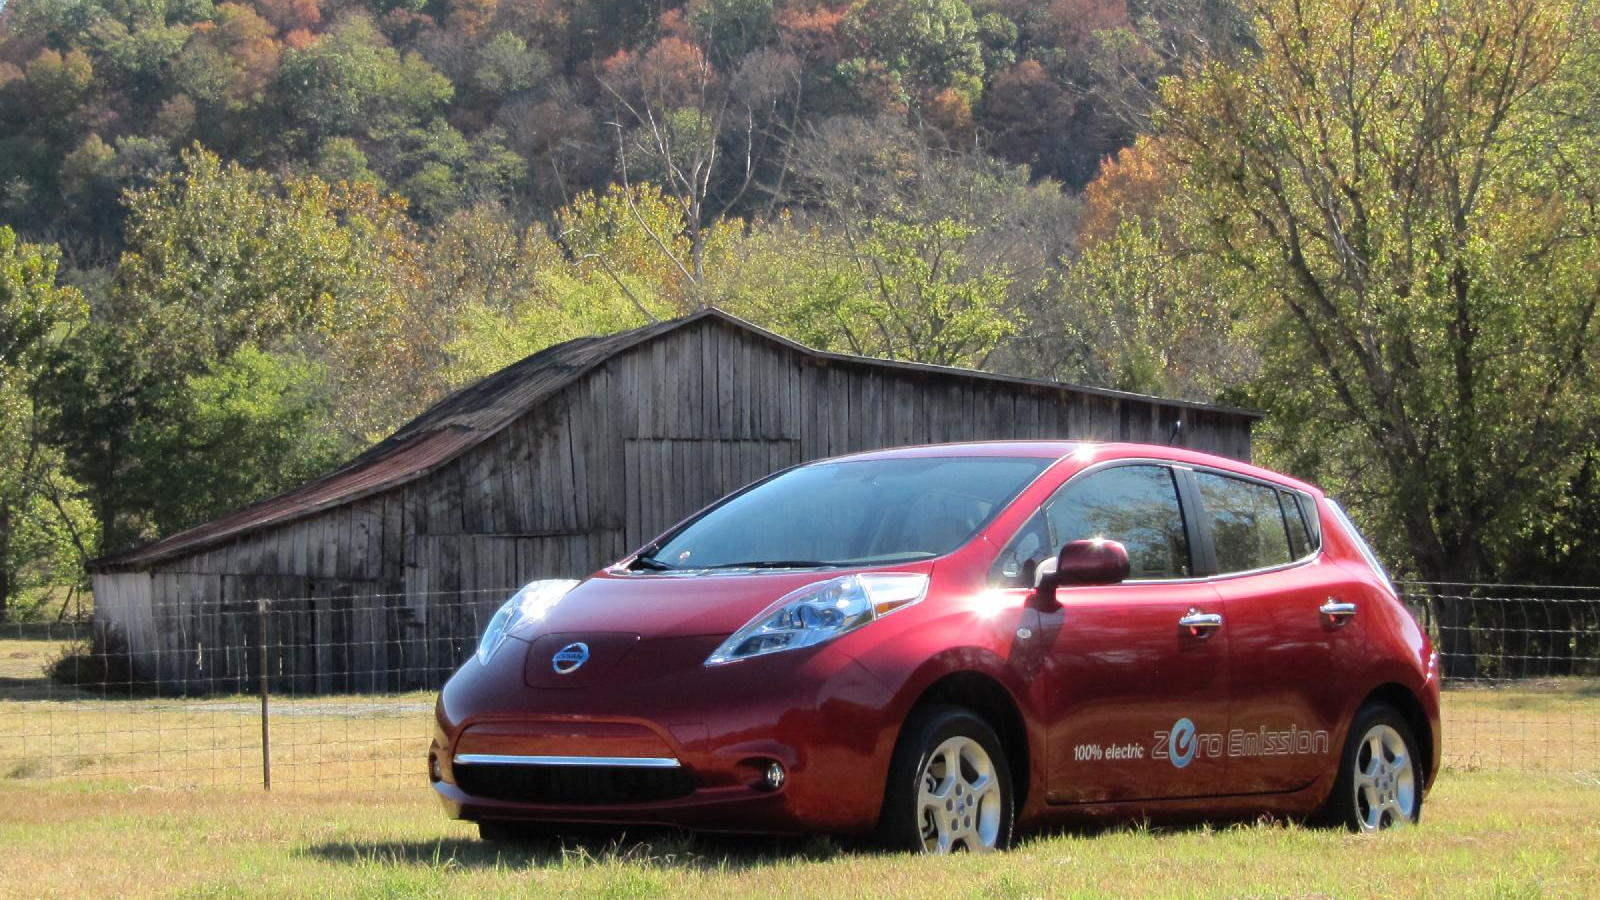 2011 Nissan Leaf, Nashville, October 2010